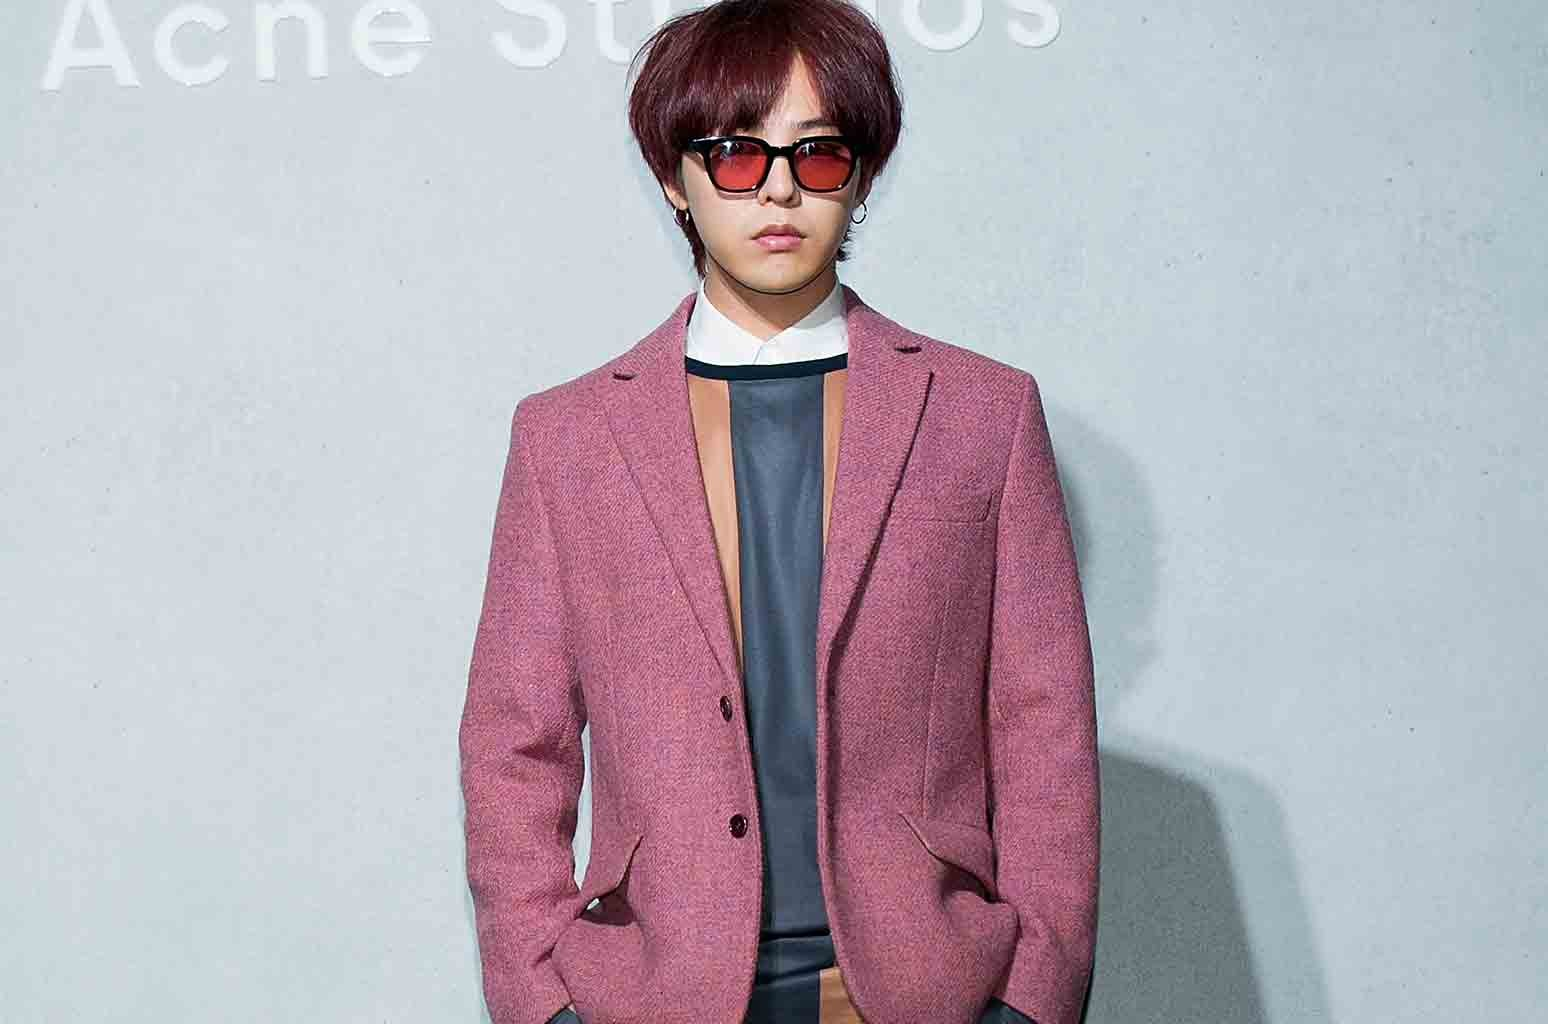 G-Dragon aka Kwon Ji-Yong of South Korean boy band Bigbang attends the launch party for 'Acne Studio' flagship store on Sept. 18, 2015 in Seoul.